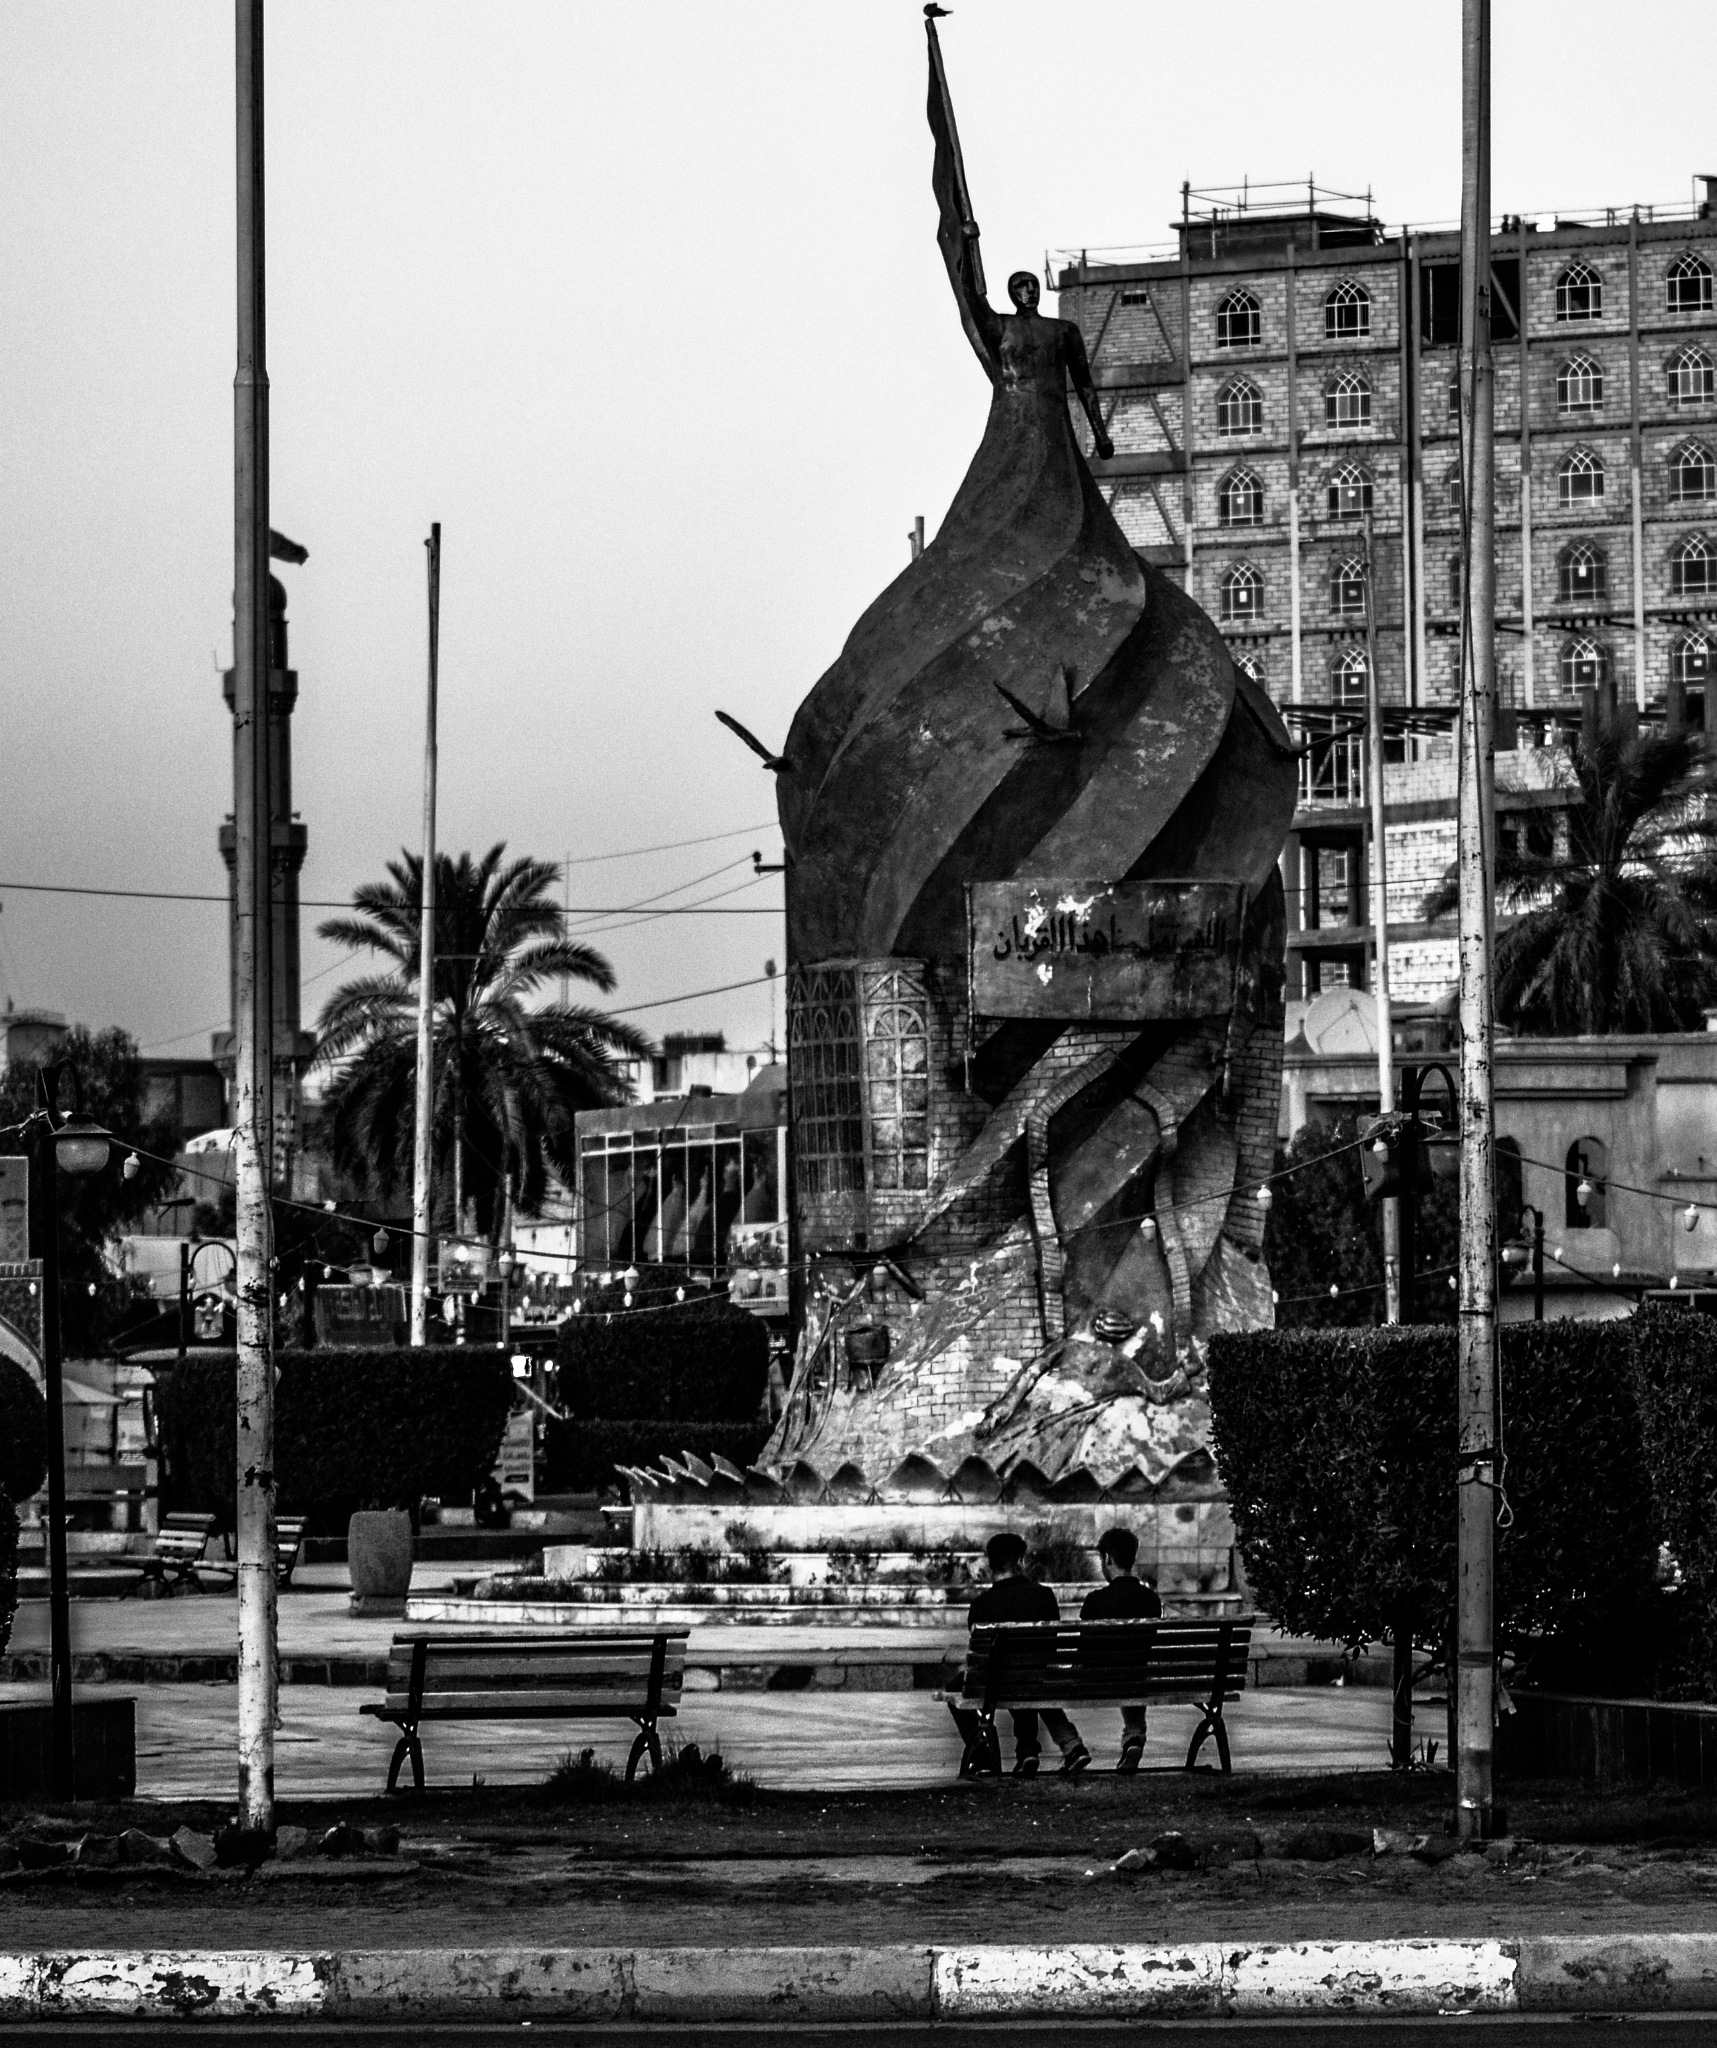 Statue of Victory by HussainAhmed